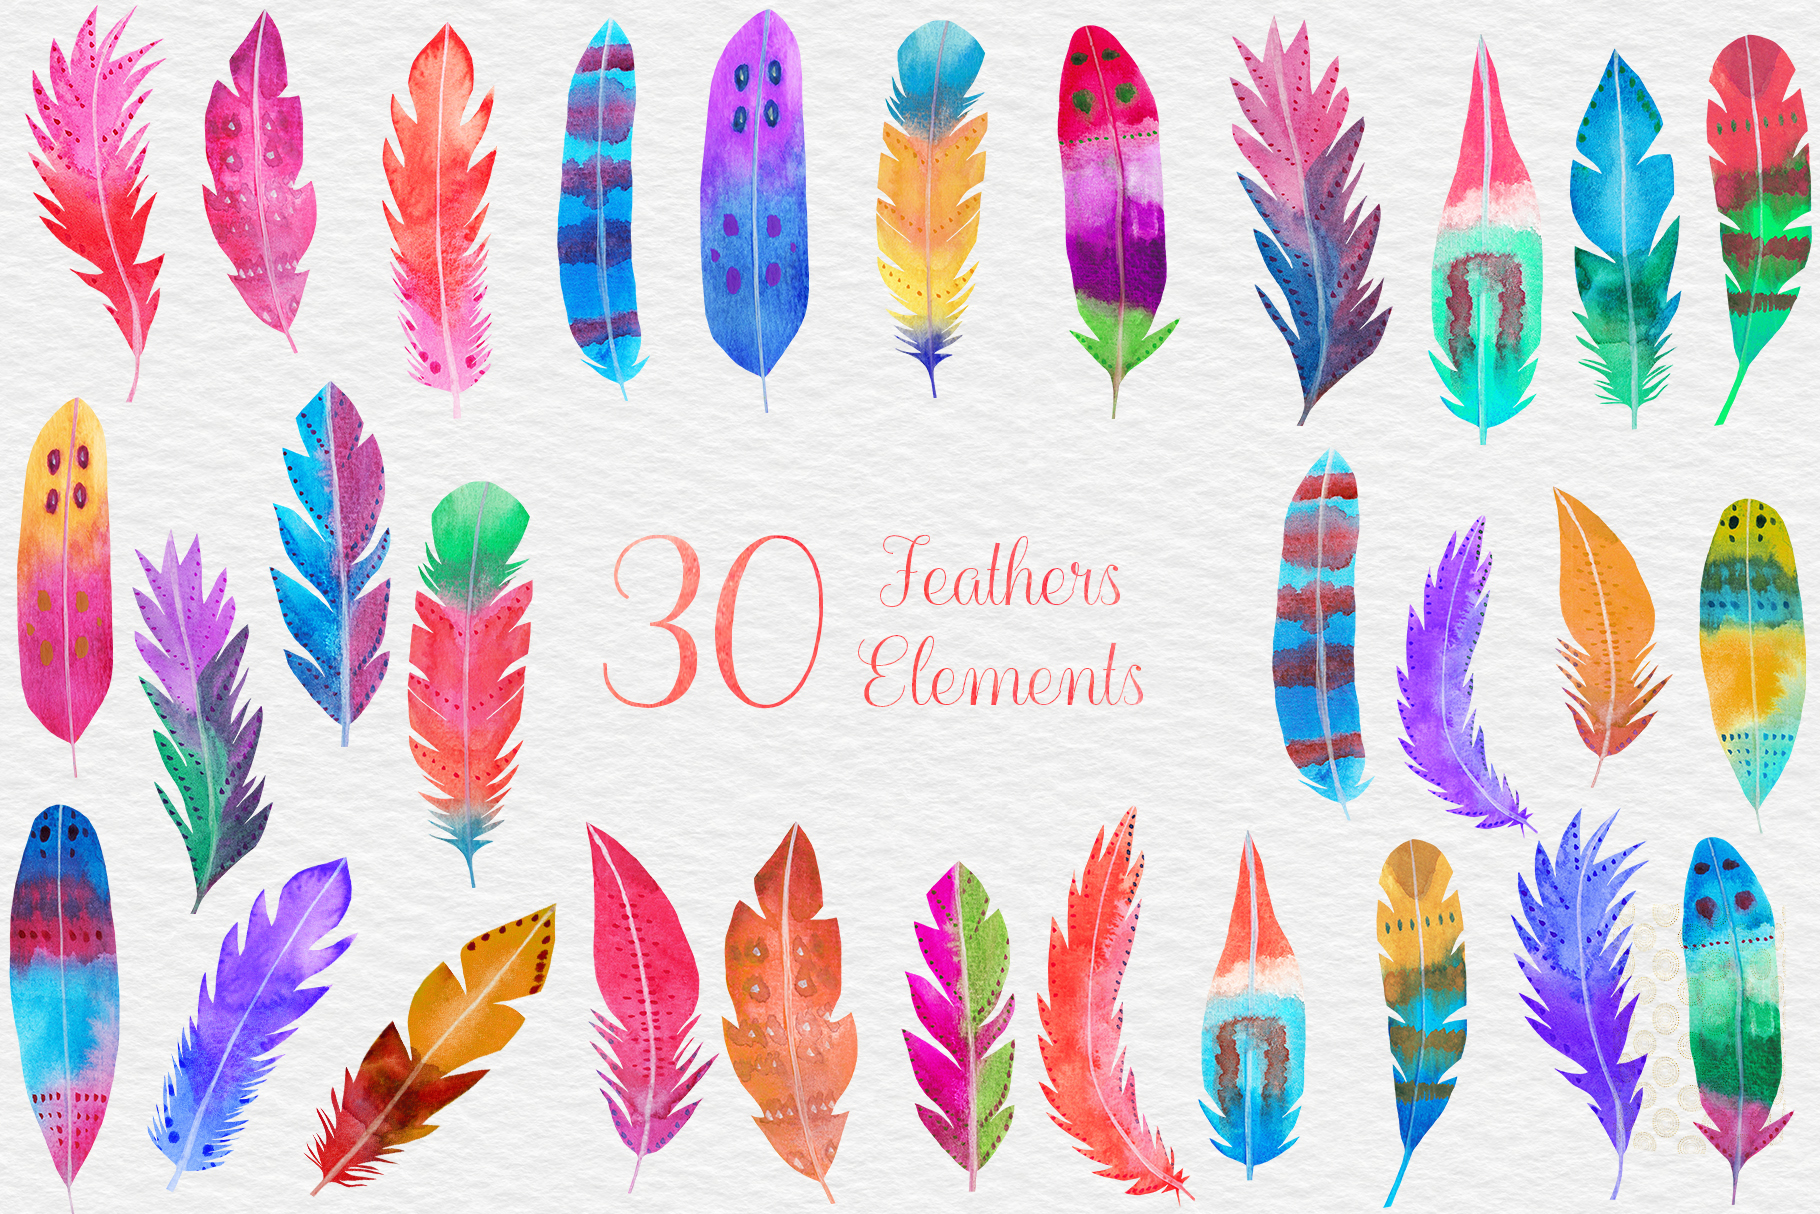 Watercolor Feathers Clipart, Feather Illustration example image 2